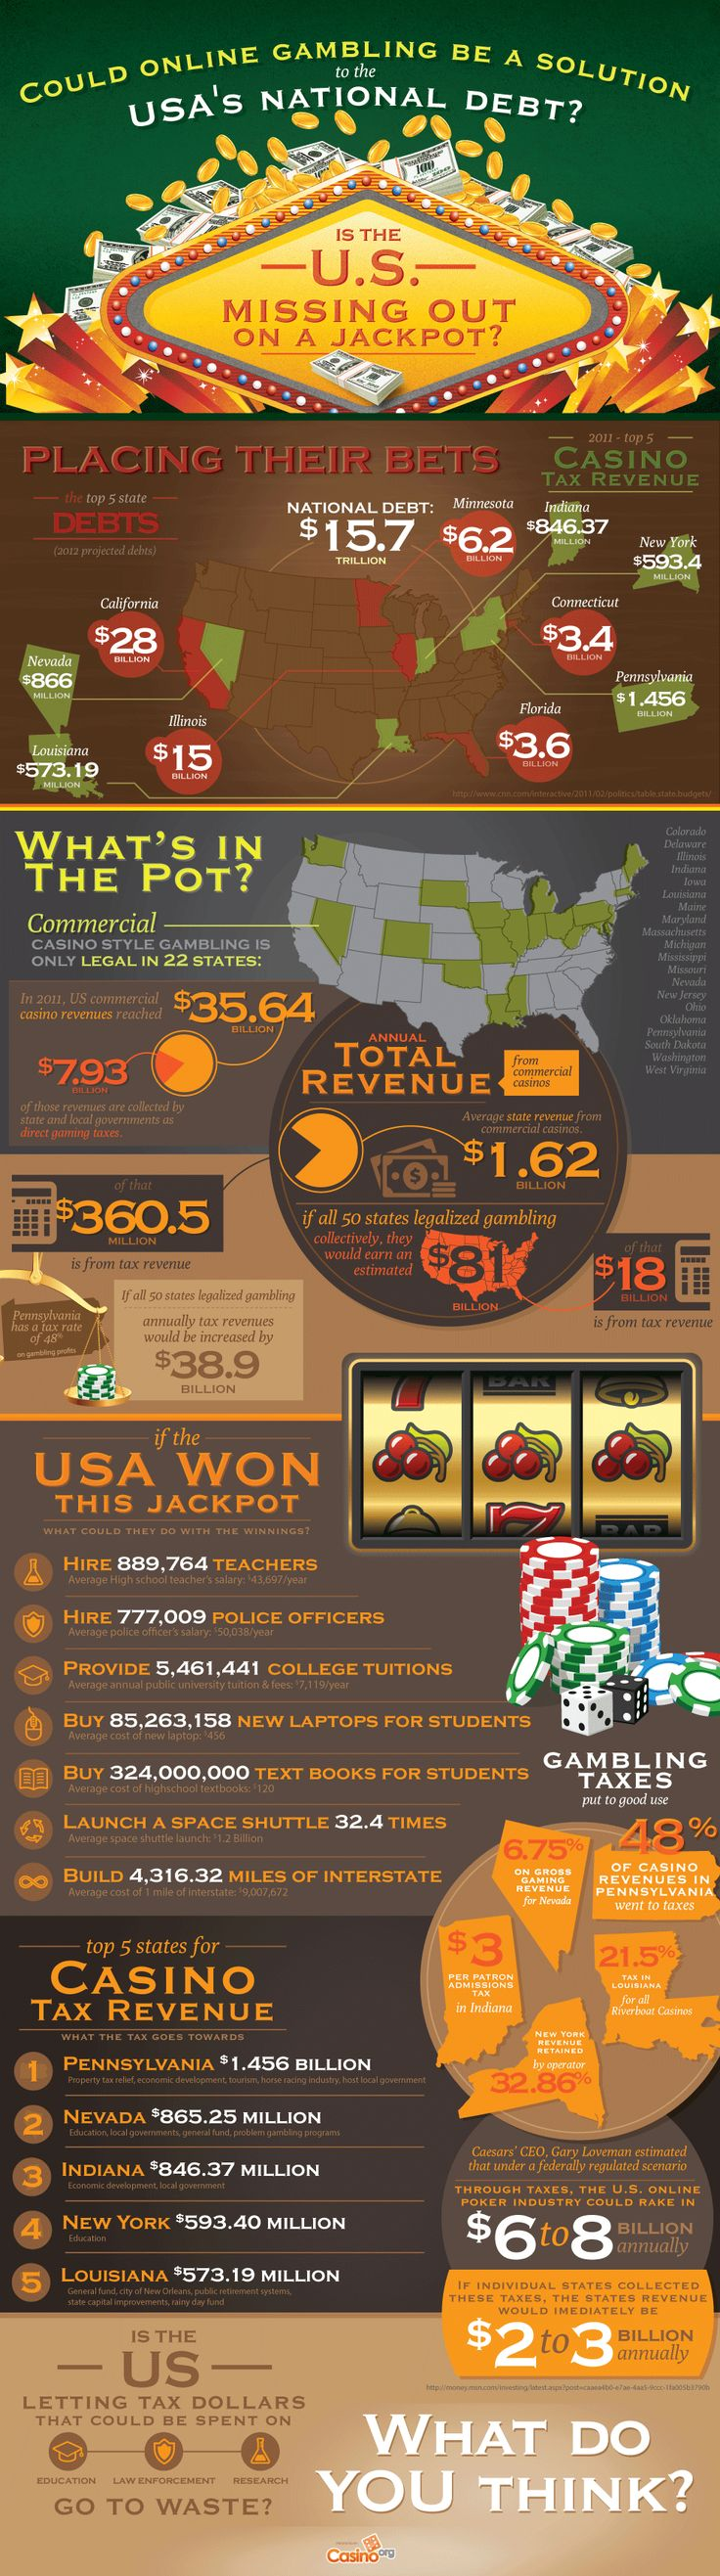 Gambling and the USA National Debt - Casinos, Online Gaming, Teachers, Police Officers, College Tuition, Laptops, Students, Text Books, Space Shuttle, Build Interstate, Taxes, Tax Dollars